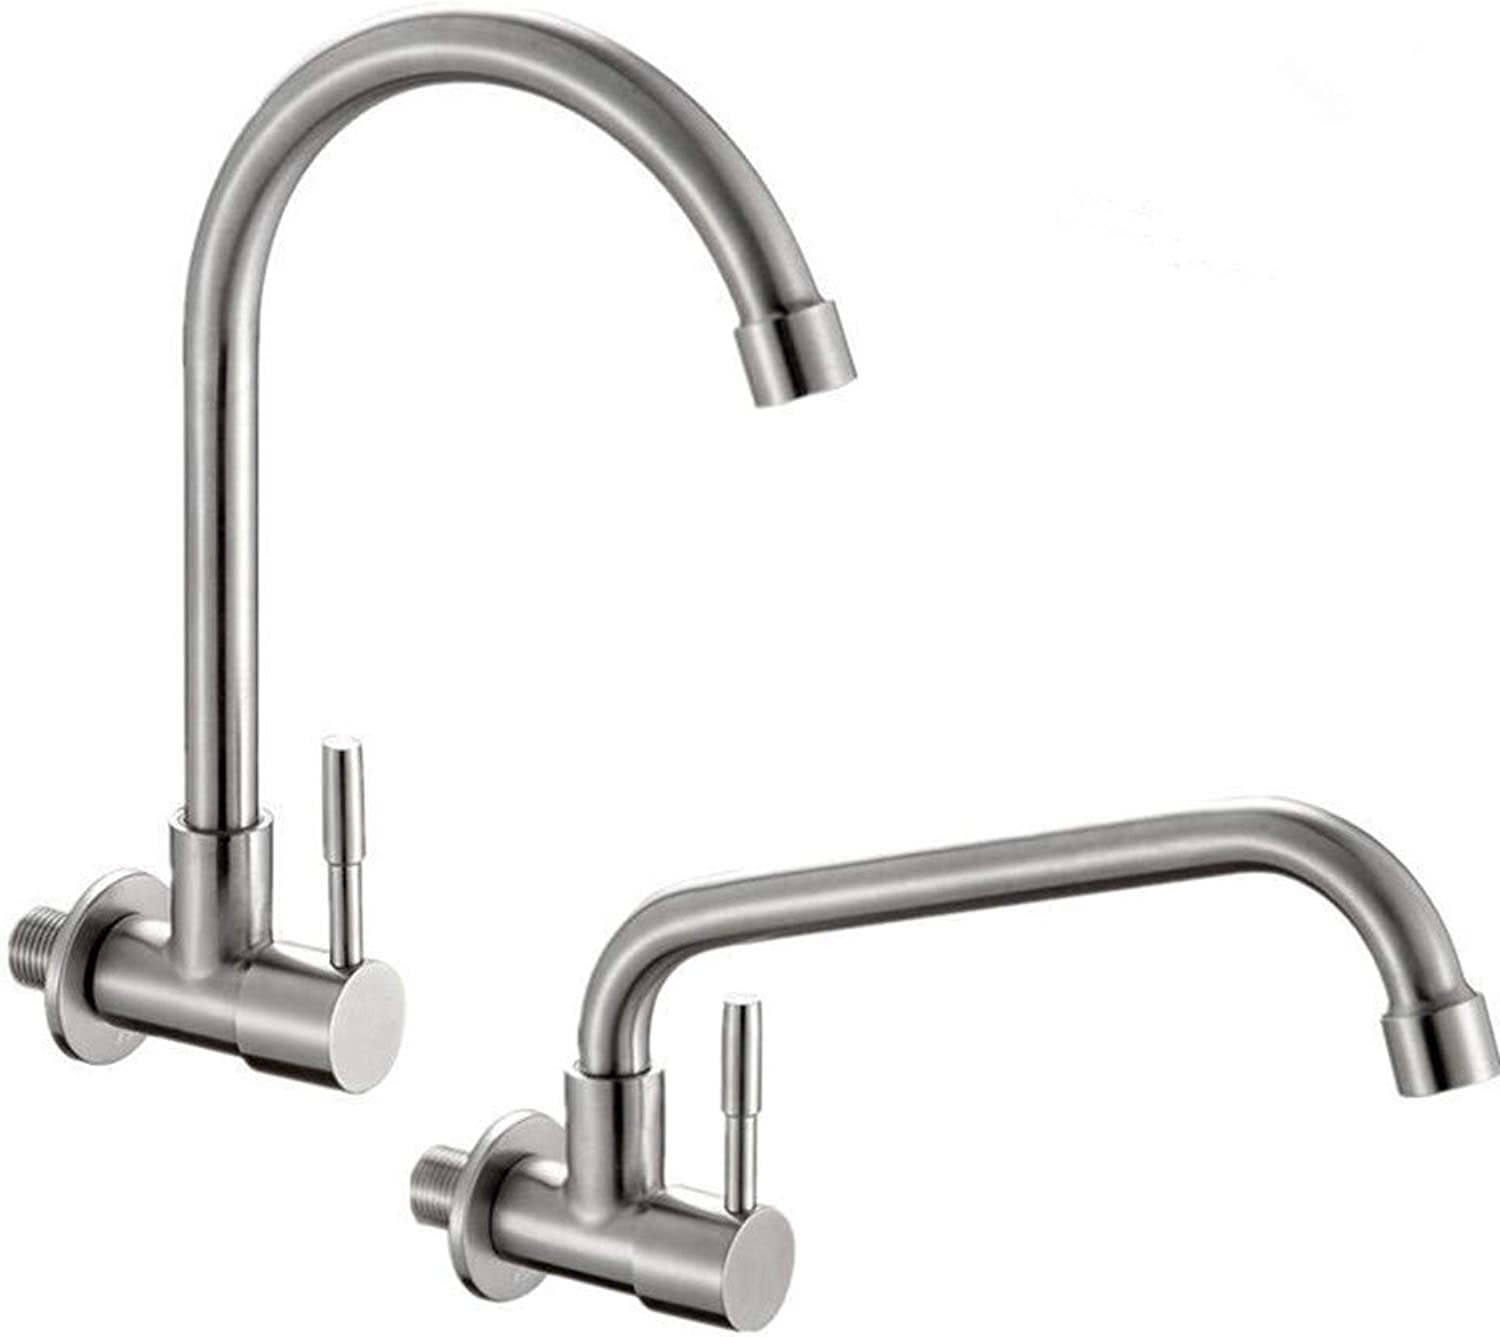 Zhcmy?Faucet Stainless Steel Kitchen Faucet Single Cold Into The Wall Sink Sink Tow Pool Balcony Laundry Pool Faucet